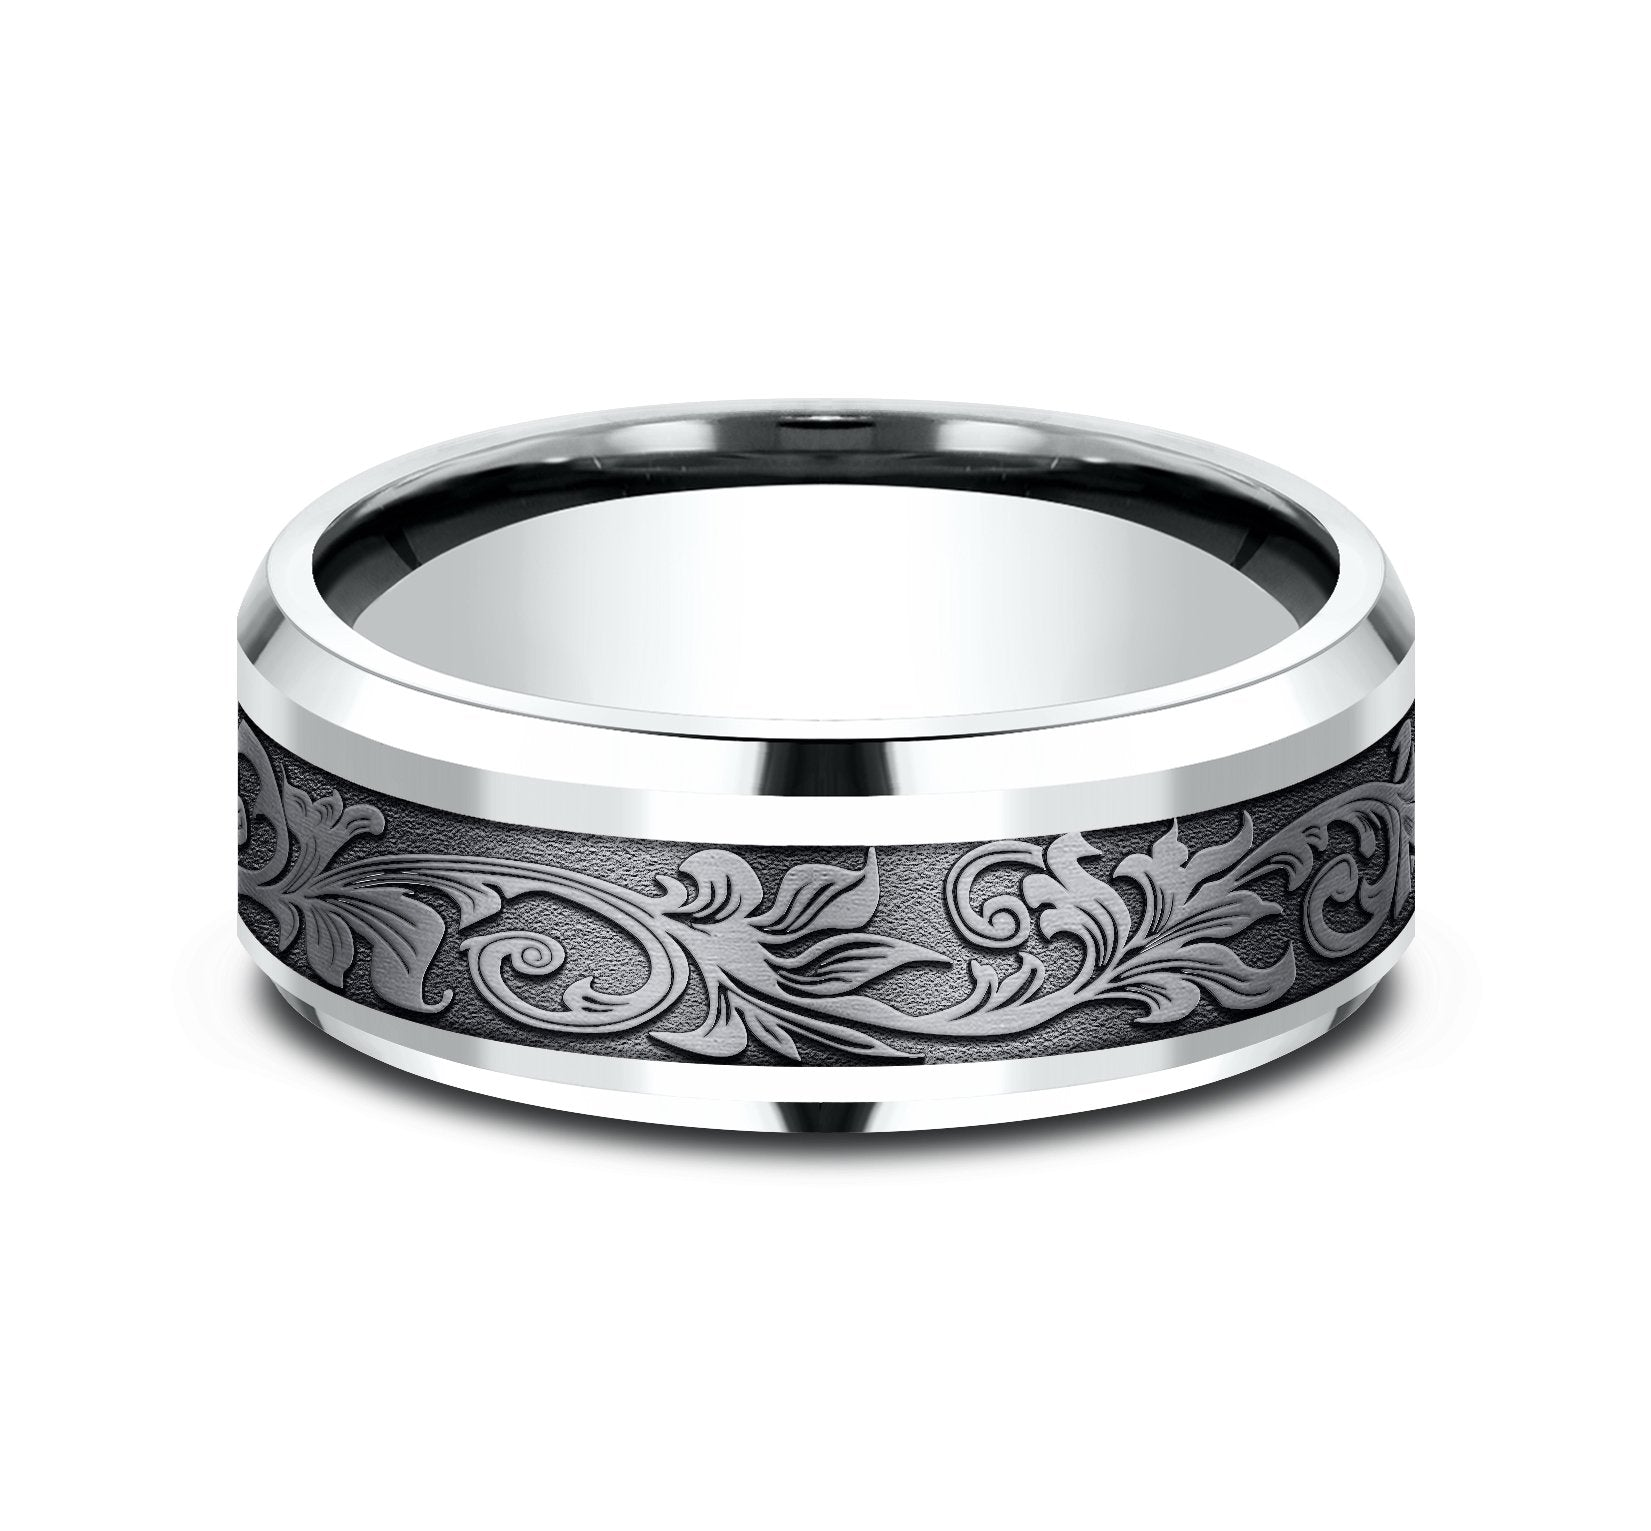 Grey Tantalum and 14k White Gold 8mm Band